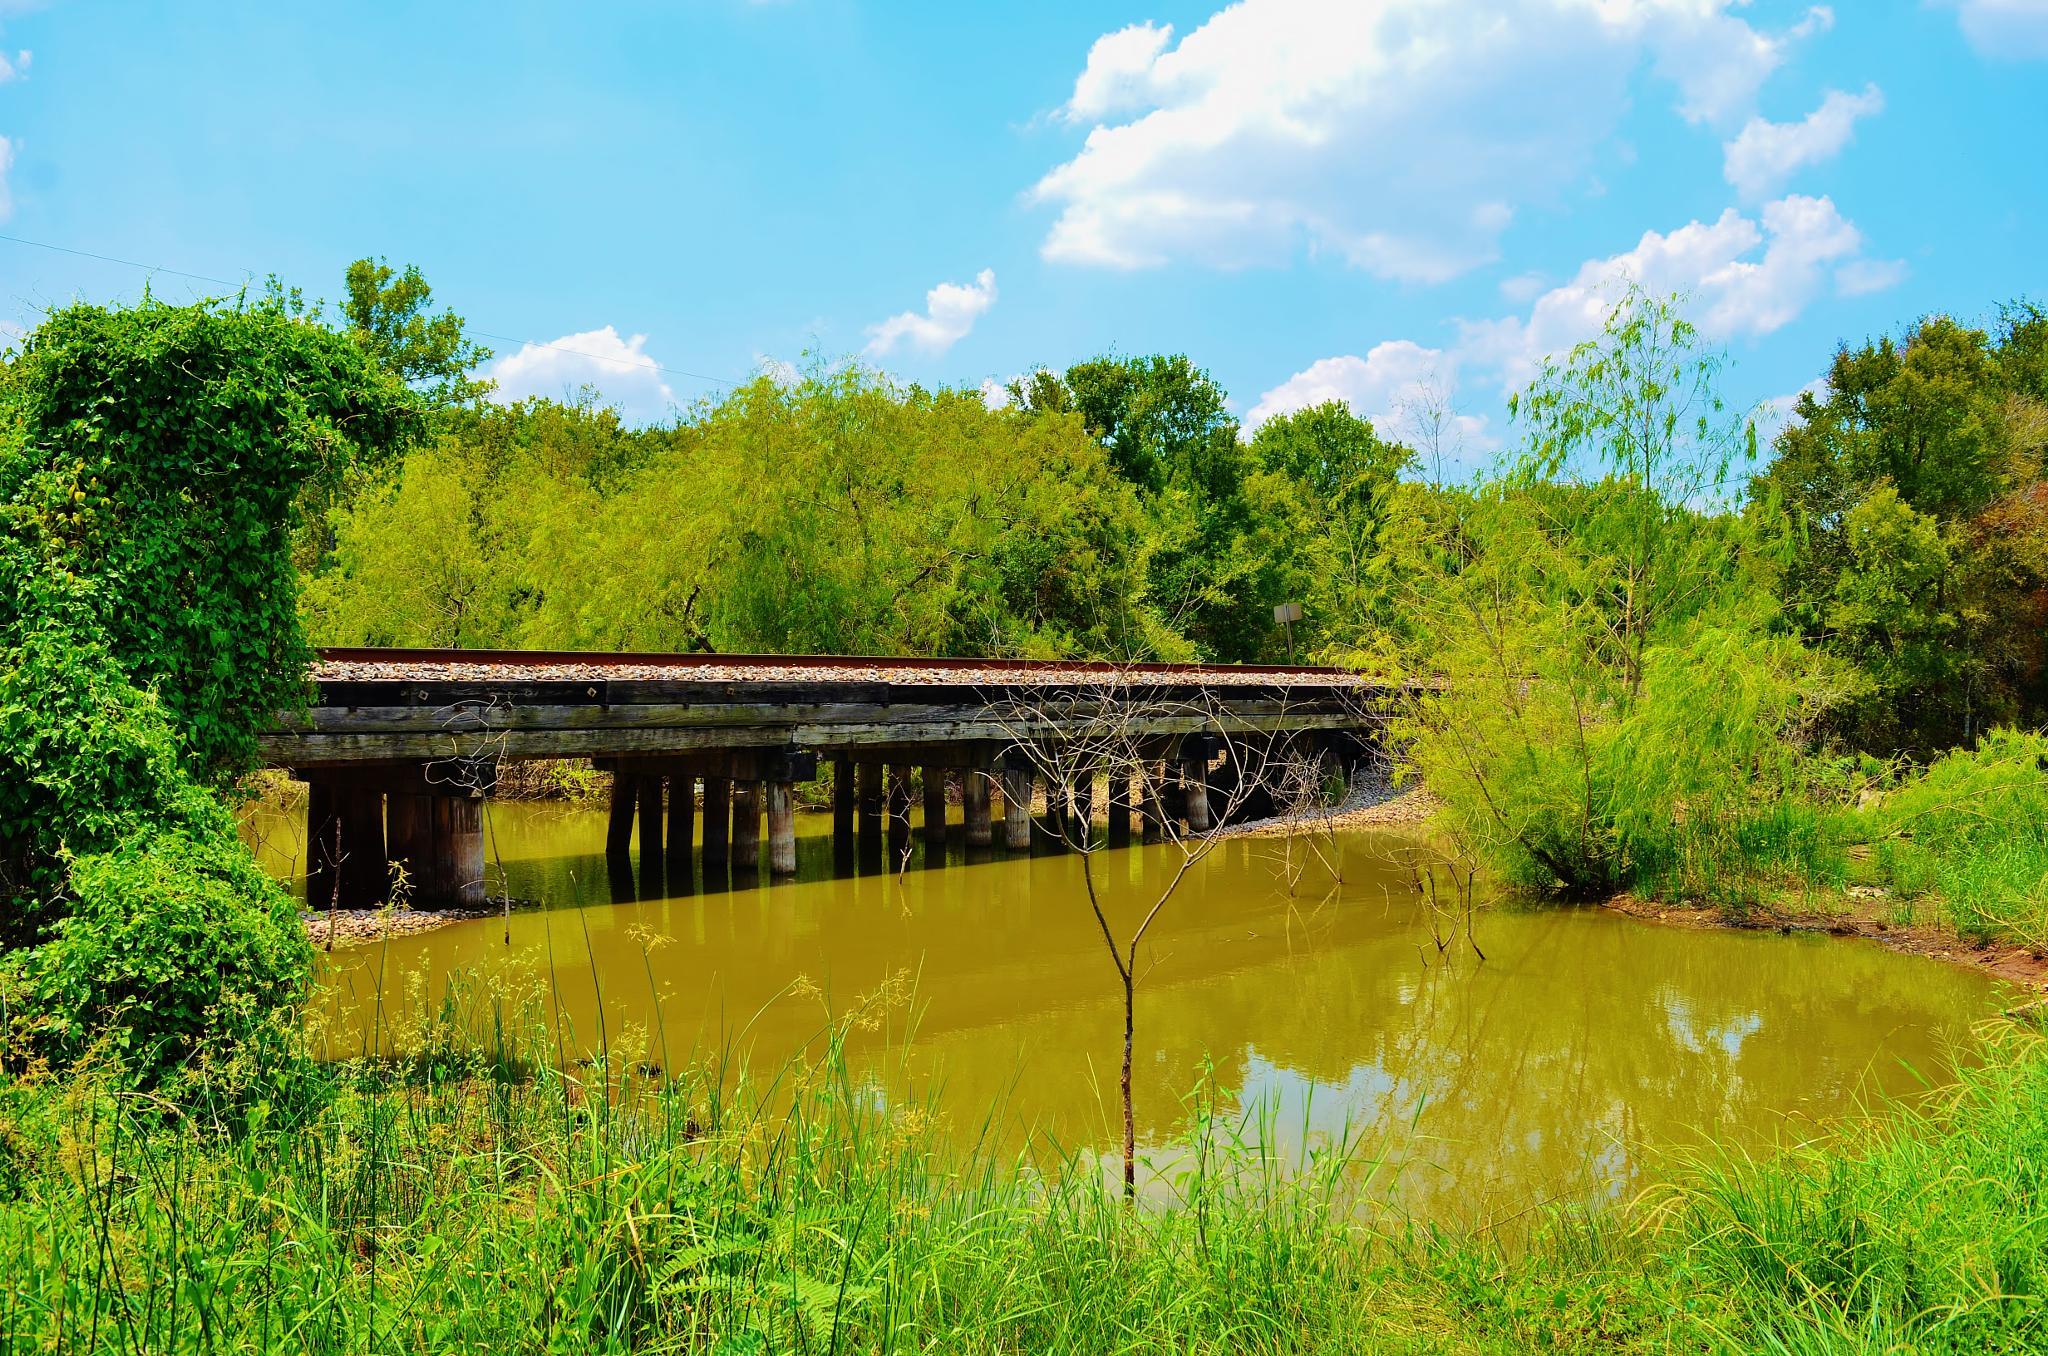 Crossing The Creek I  2862 by Jim Suter